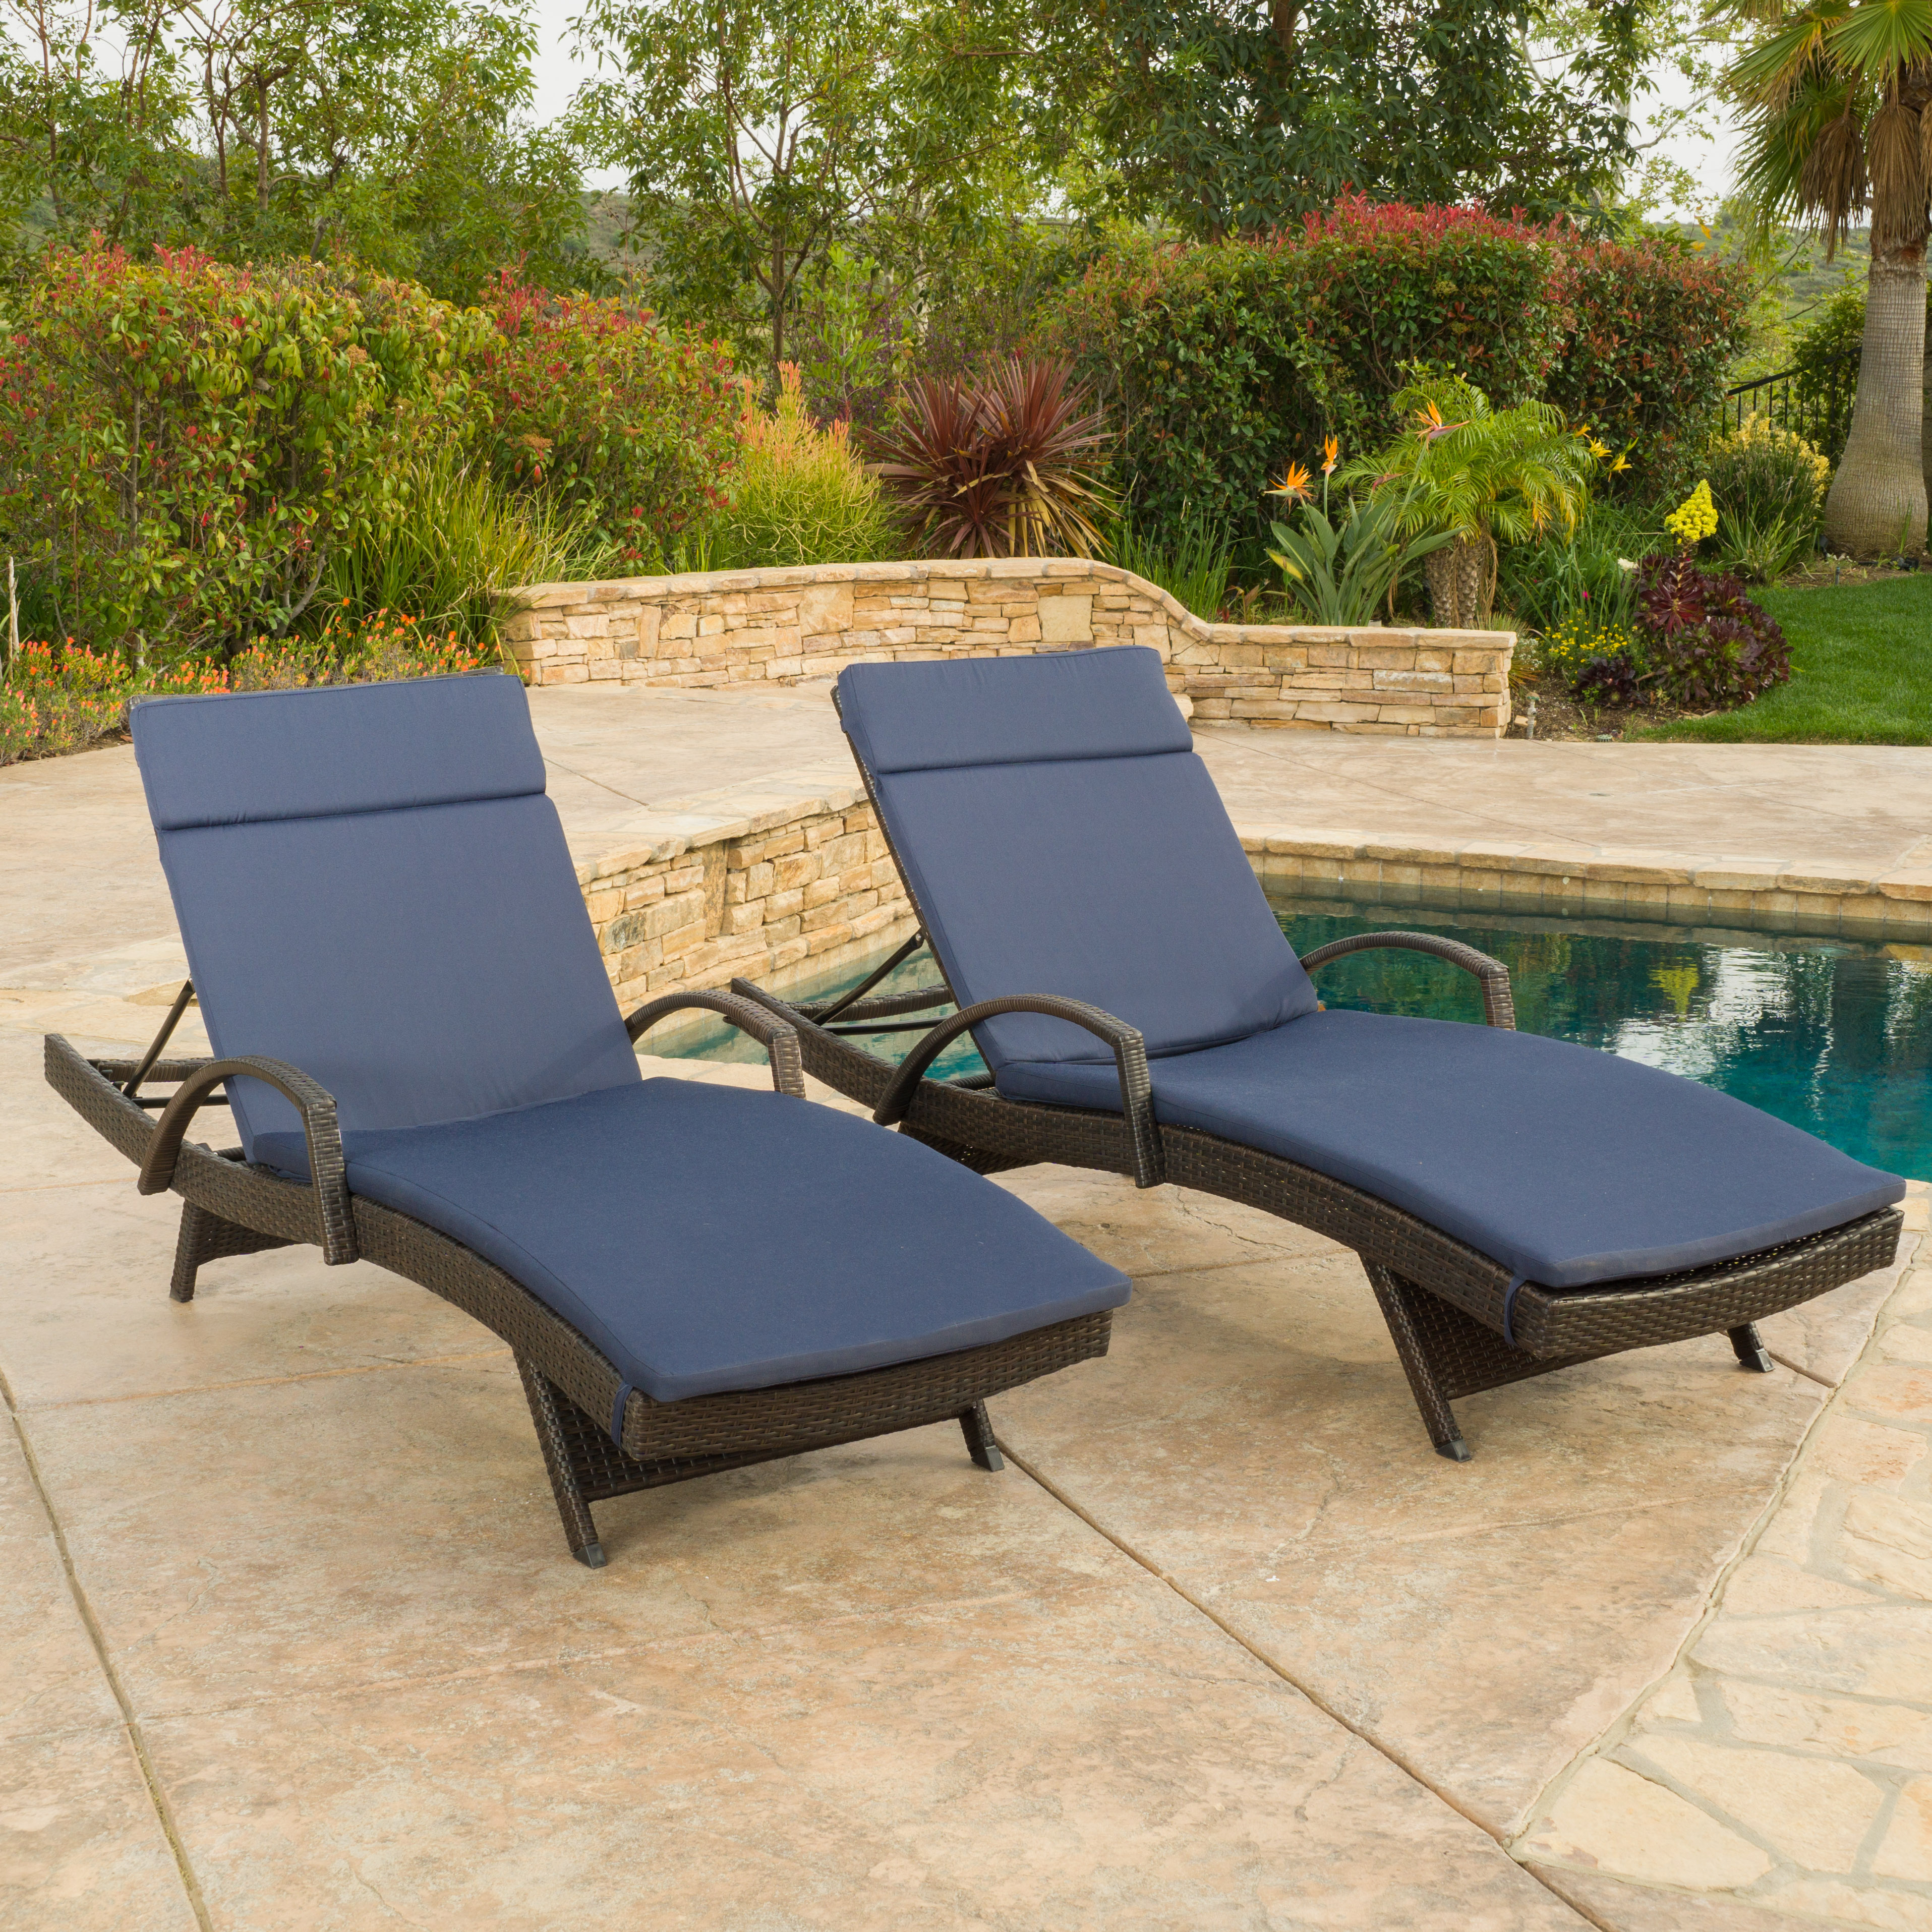 Brookside Outdoor Wicker Adjustable Chaise Lounge with Arms w/ NAVY BLUE Cushion (Set of 2)